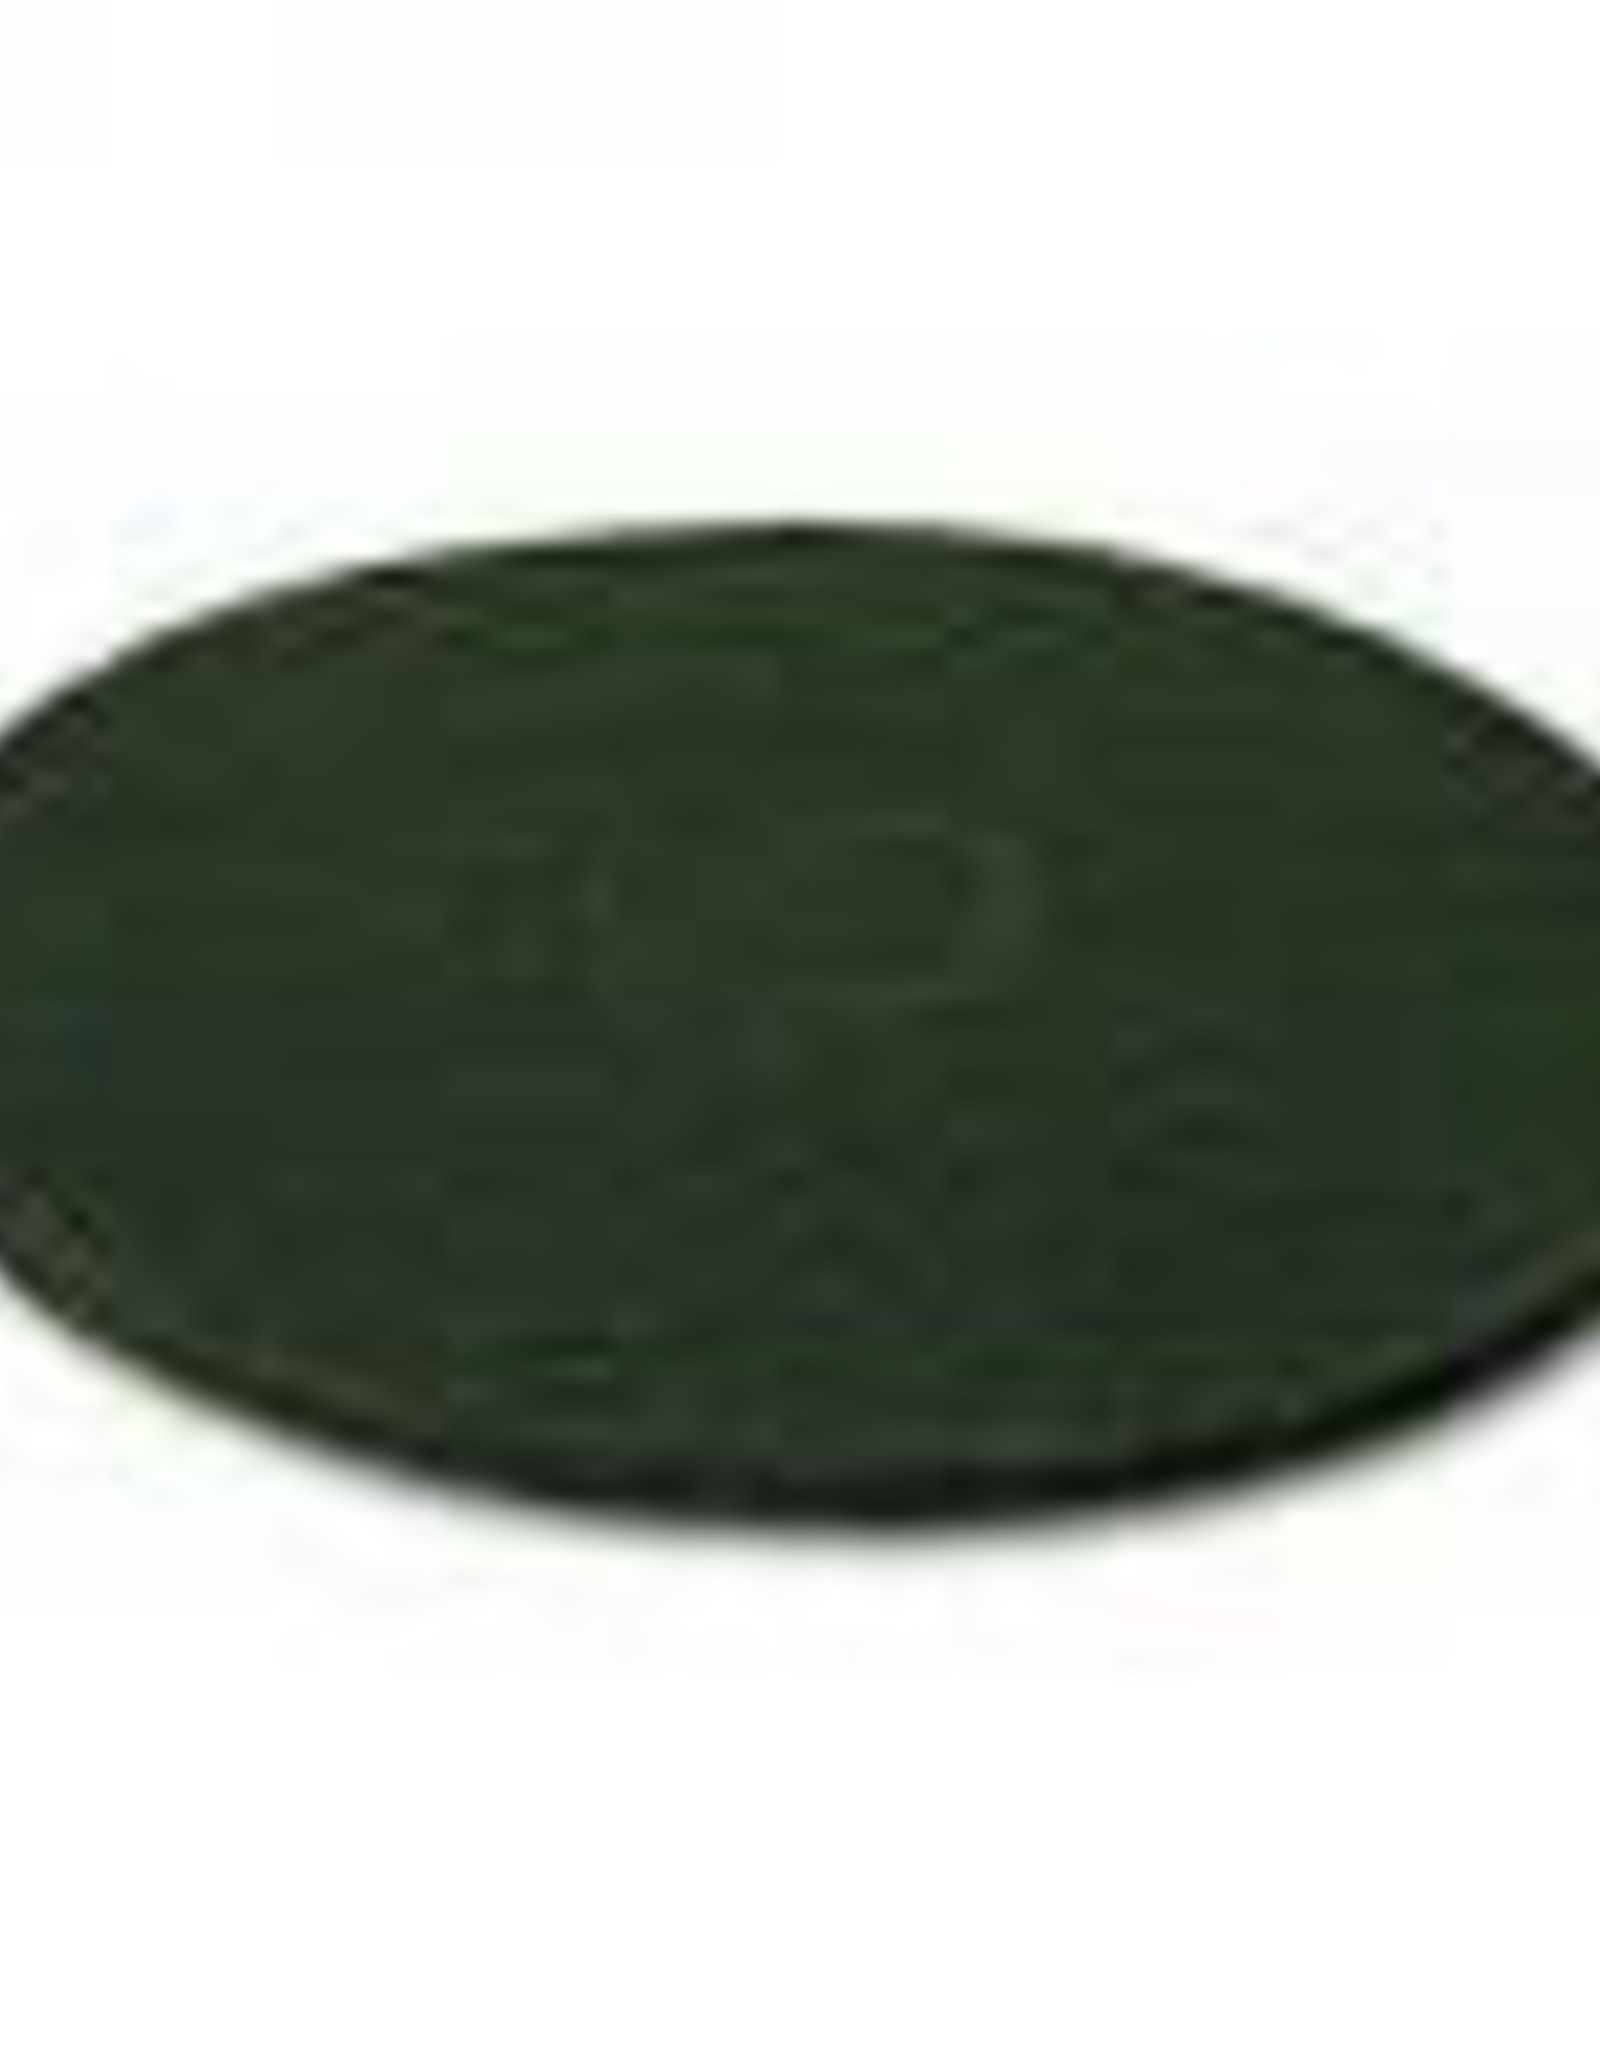 3M 3M Pad Scotch-Brite Groen